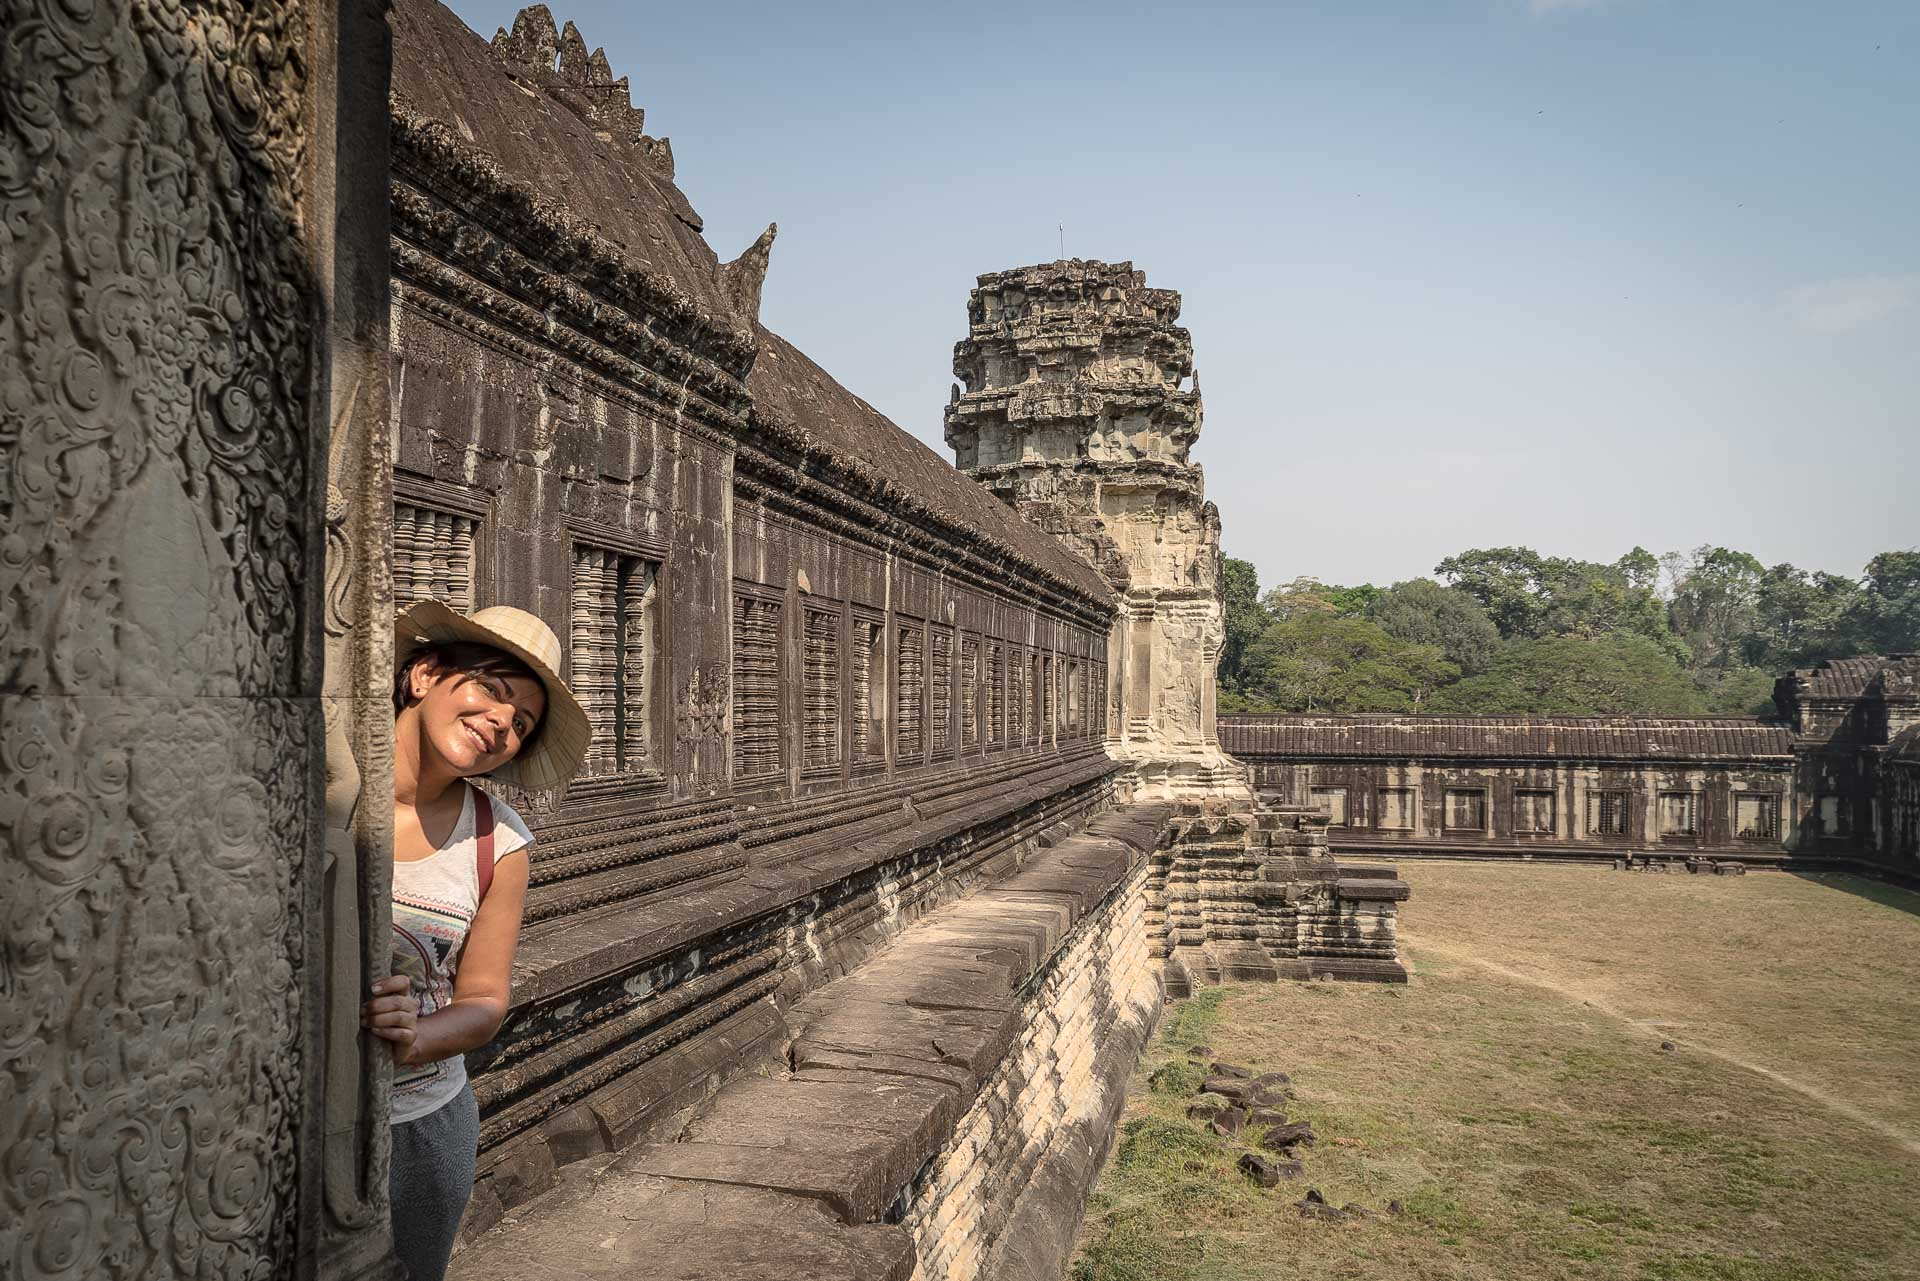 Lesvoyageuses-guide-voyage-Siem-reap-angkor-temples-Cambodge-9